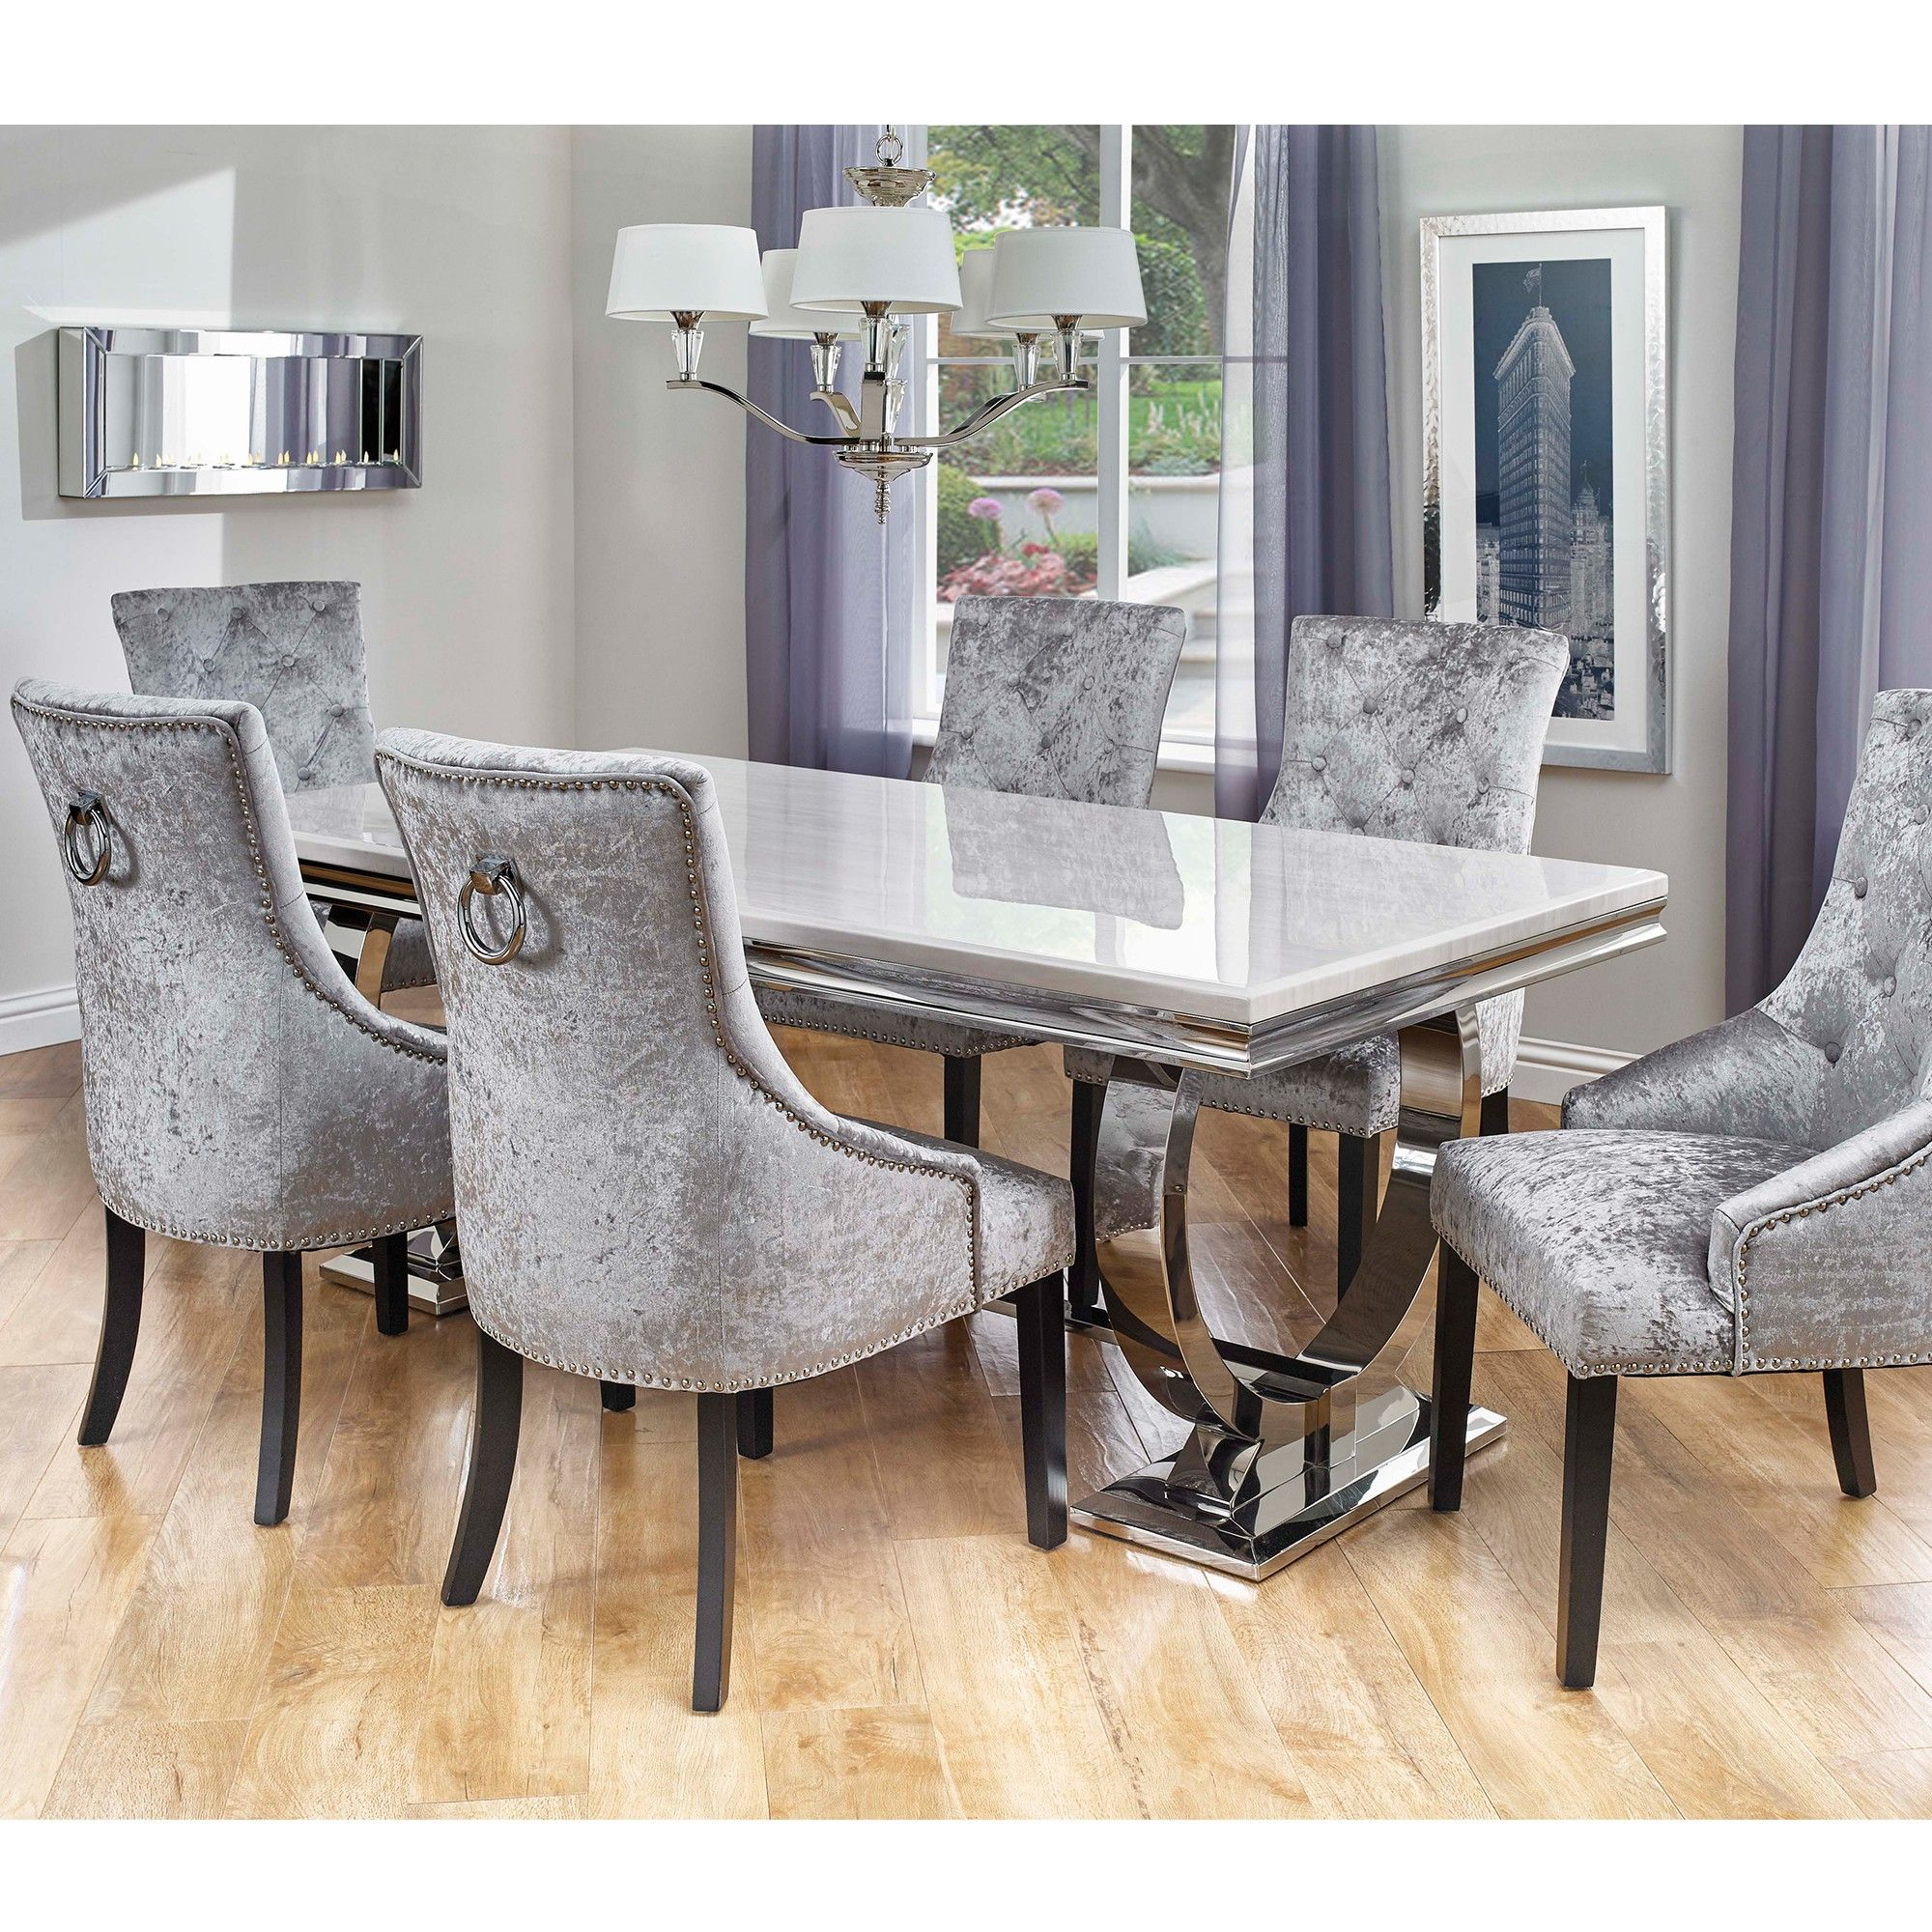 Room Fine Dining Table And 6 Chairs